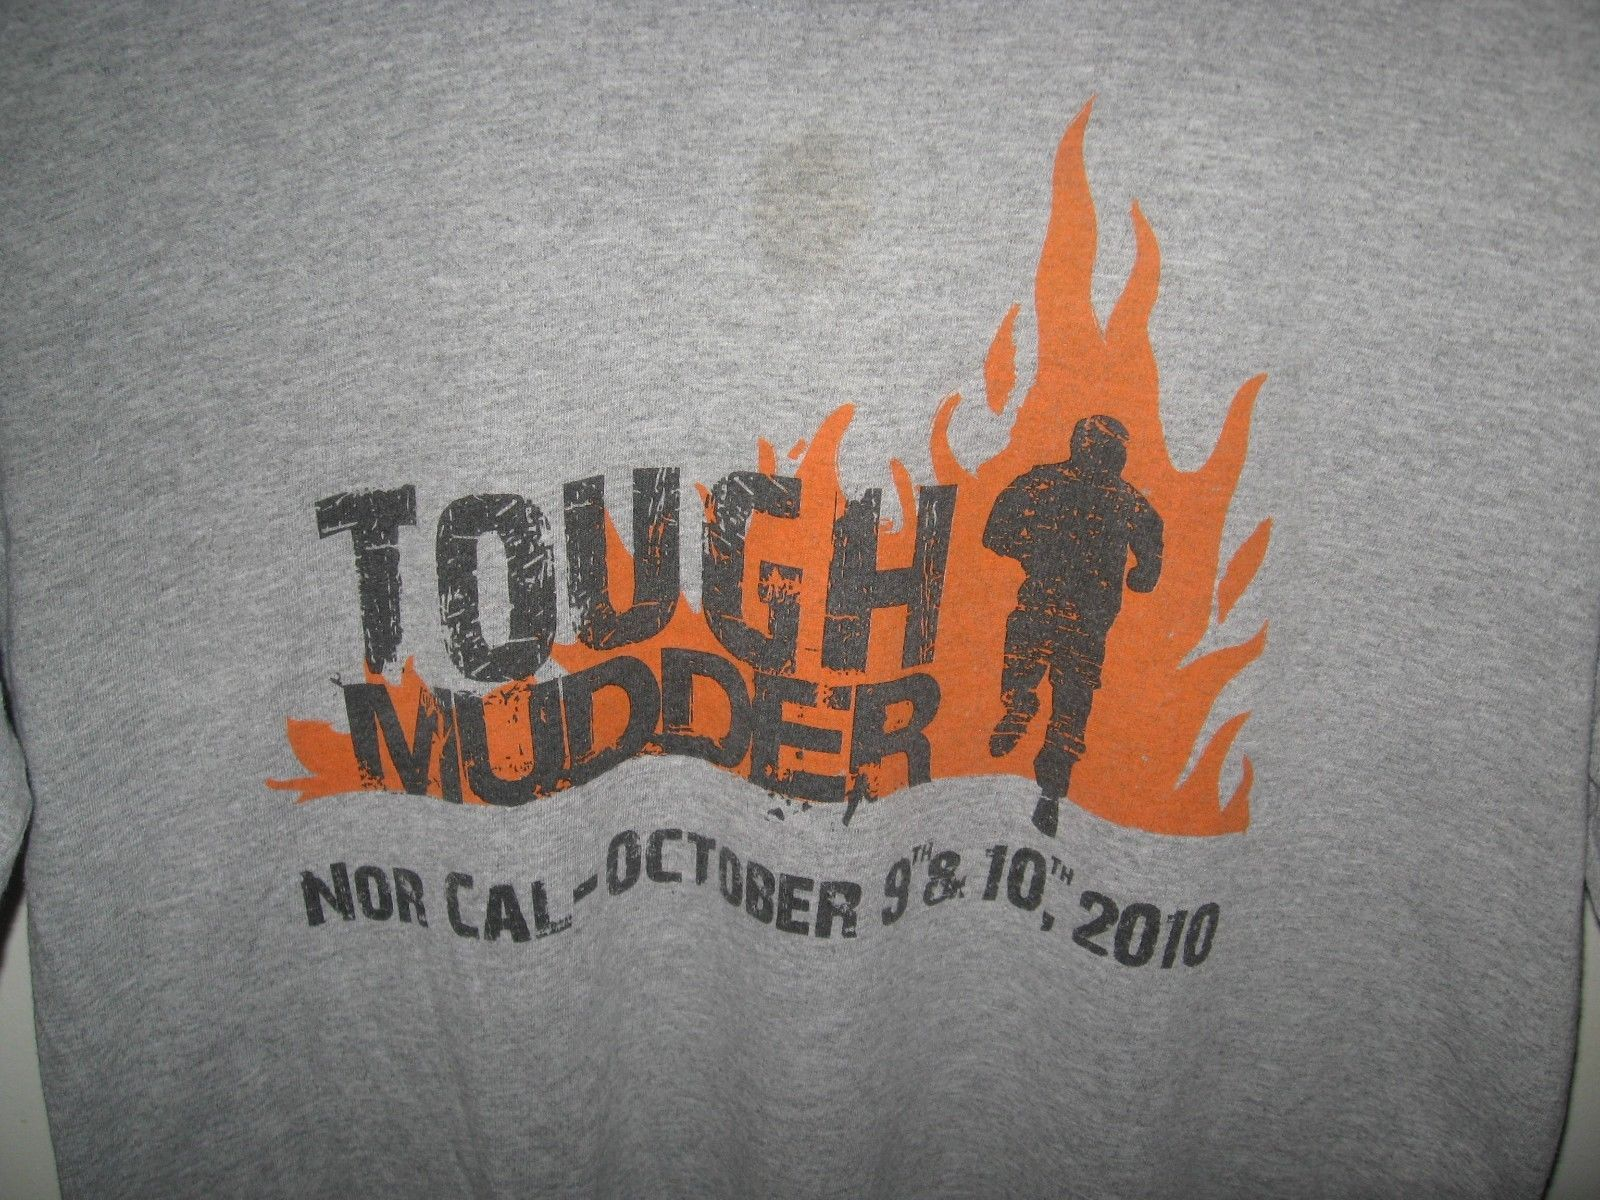 tough mudder 2010 northern california obstacle course run